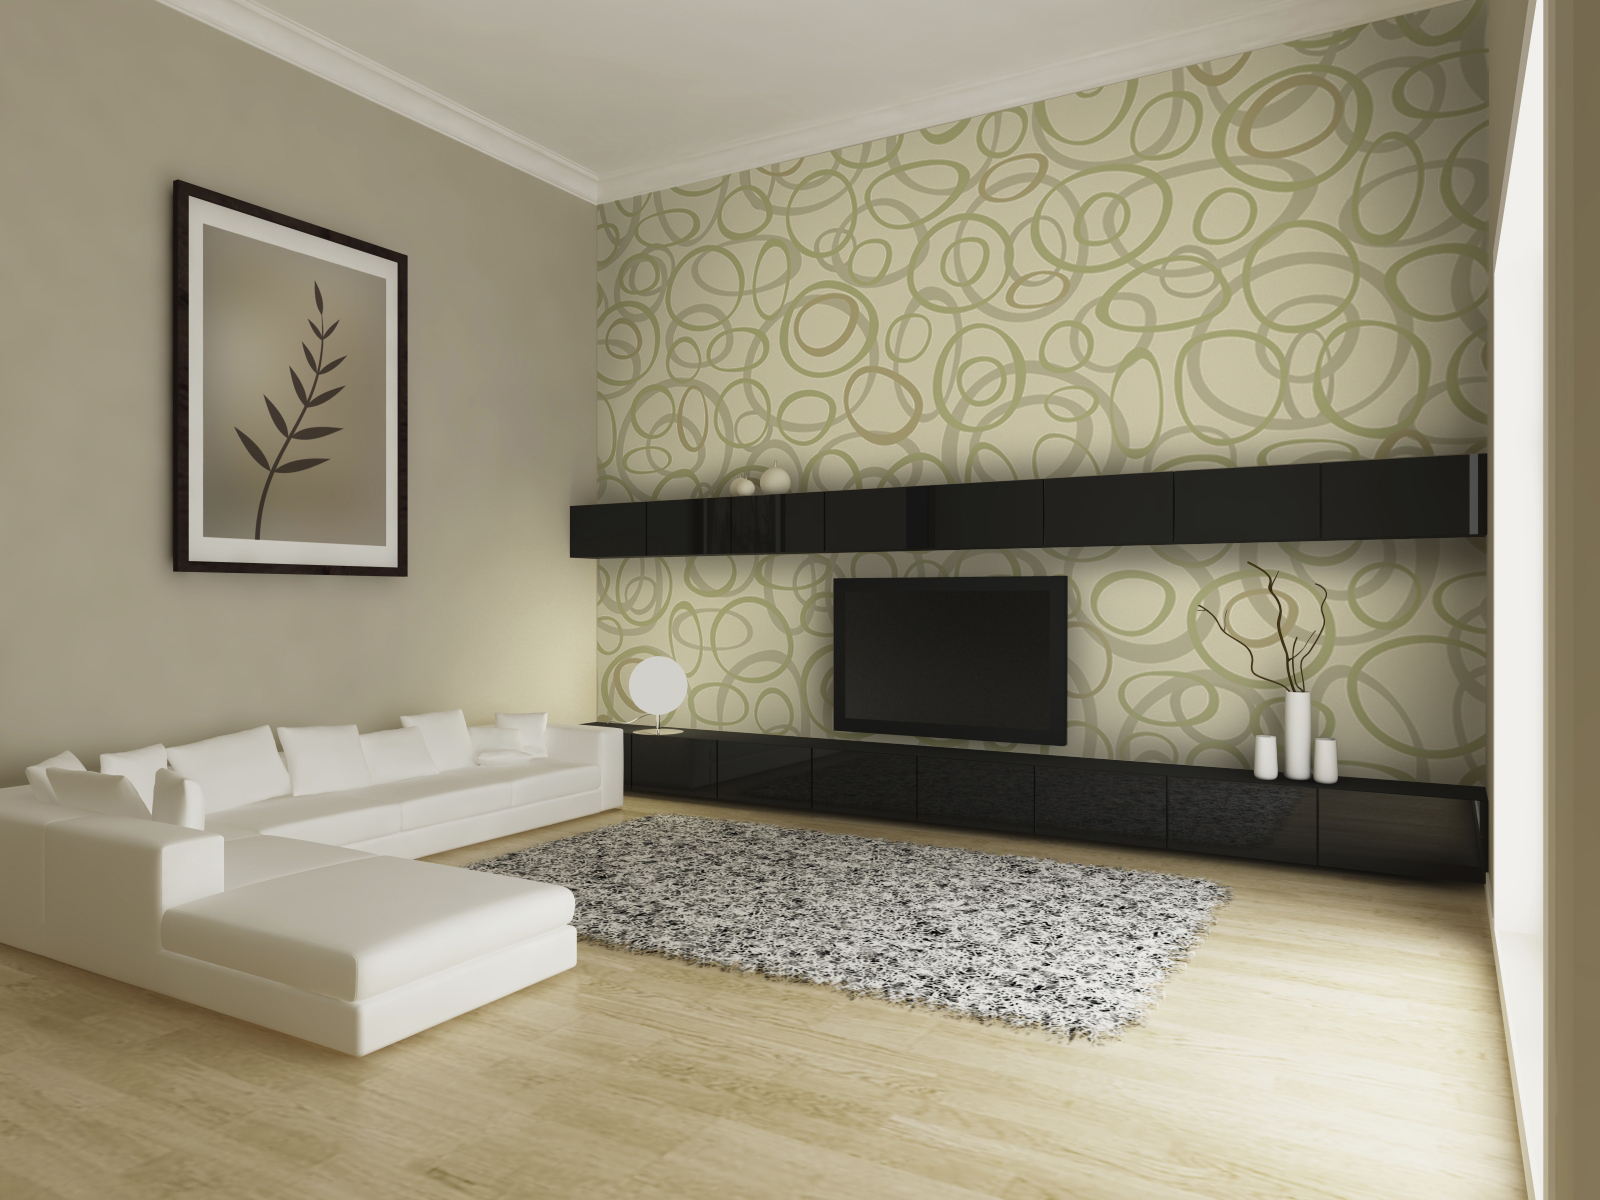 Wallpaper Interiors